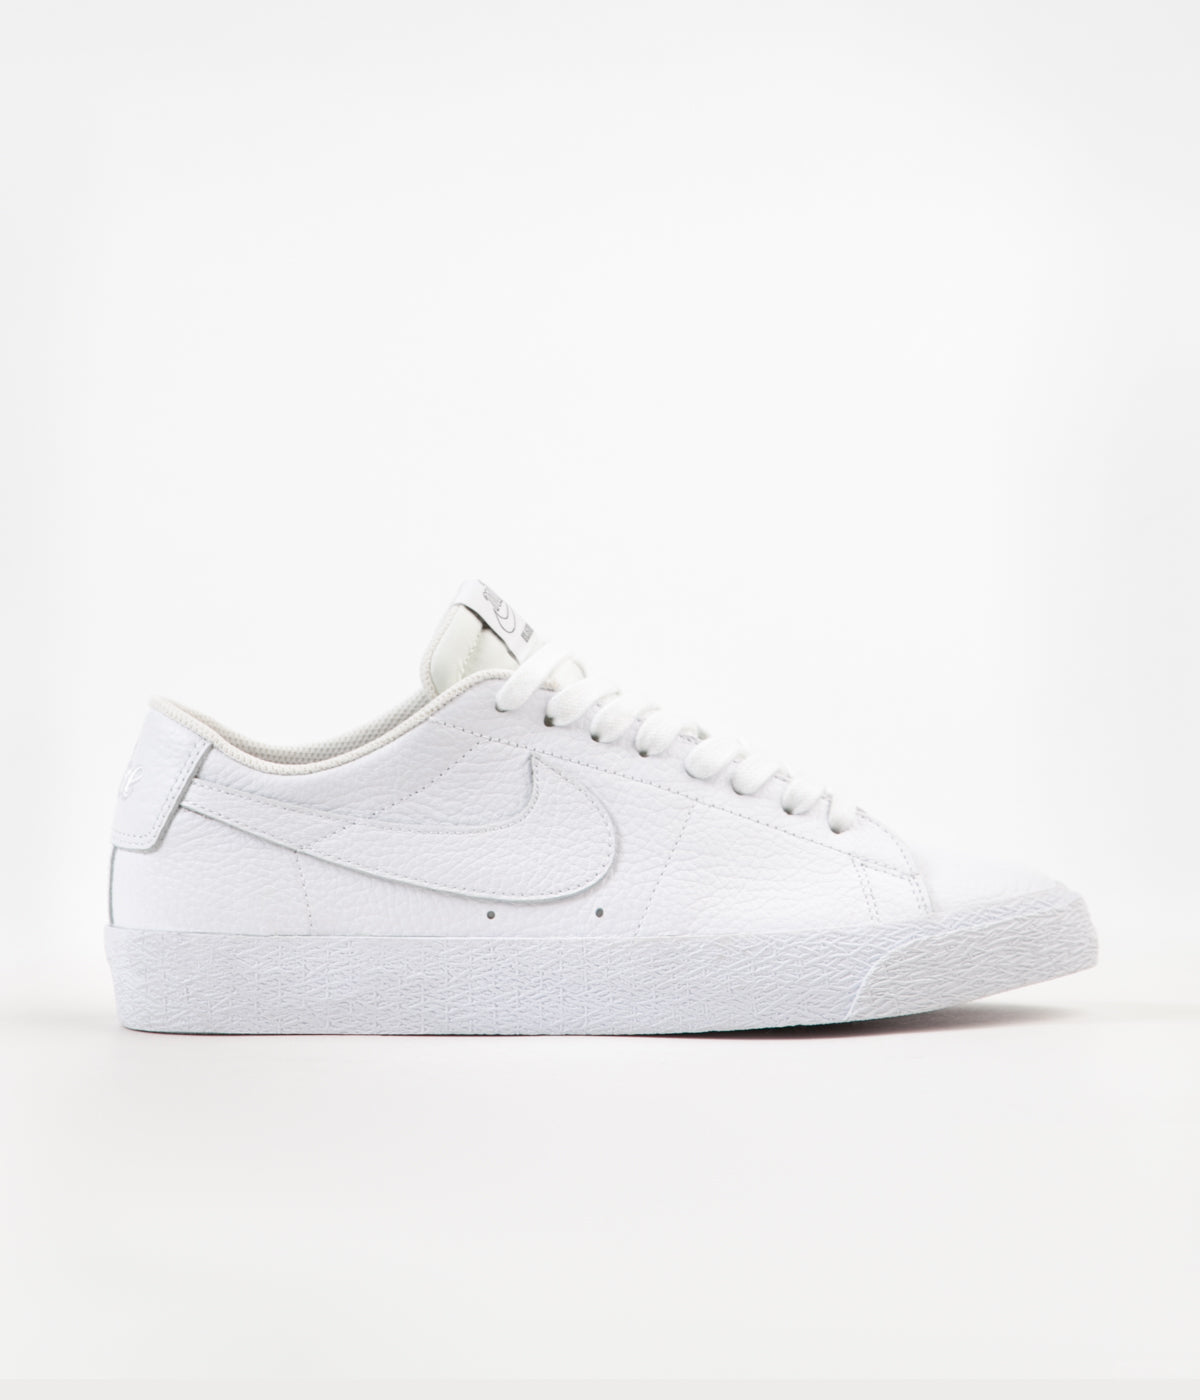 online retailer 4d47d 5df18 Nike SB x NBA Blazer Low Shoes - White / White - Rush Blue ...